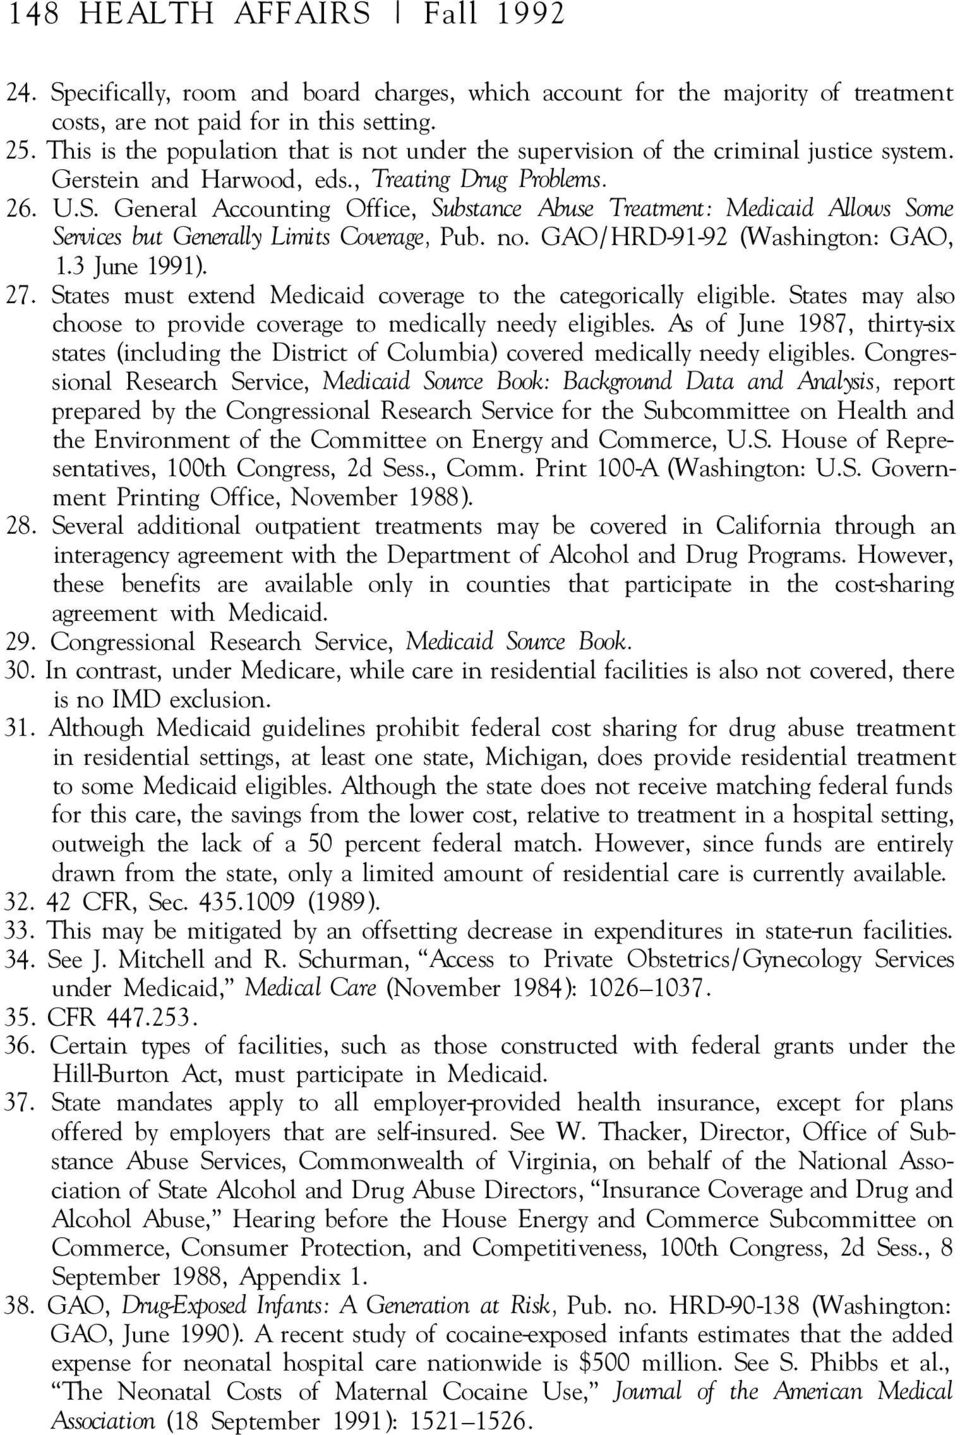 General Accounting Office, Substance Abuse Treatment: Medicaid Allows Some Services but Generally Limits Coverage, Pub. no. GAO/ HRD-91-92 (Washington: GAO, 1.3 June 1991). 27.